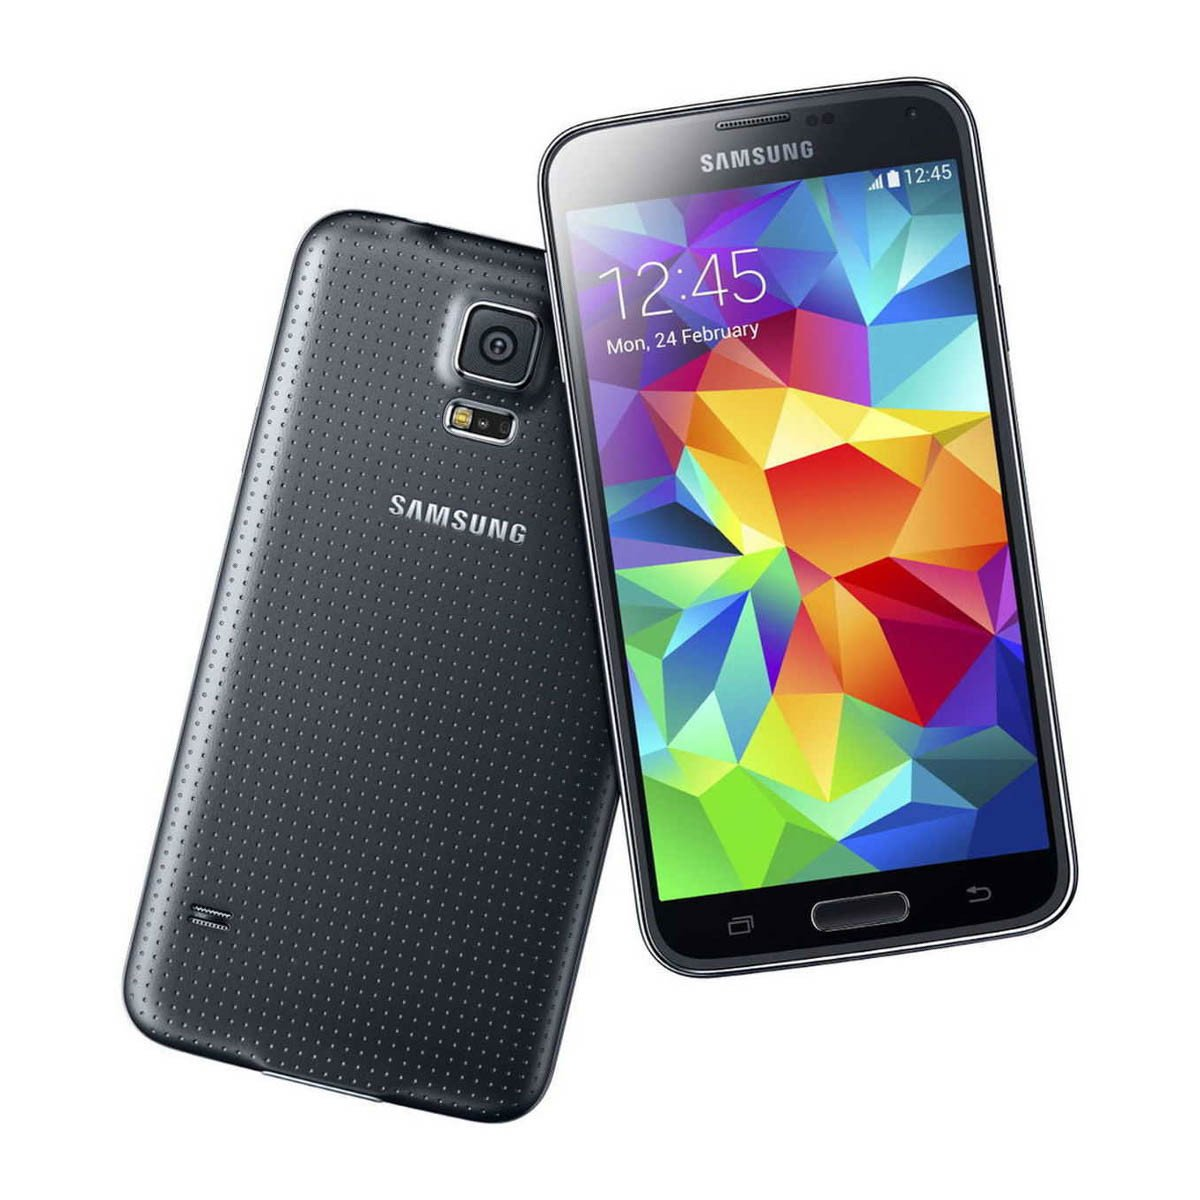 Samsung Galaxy S5 16GB - PreOwned UNLOCKED  	Australian Stock